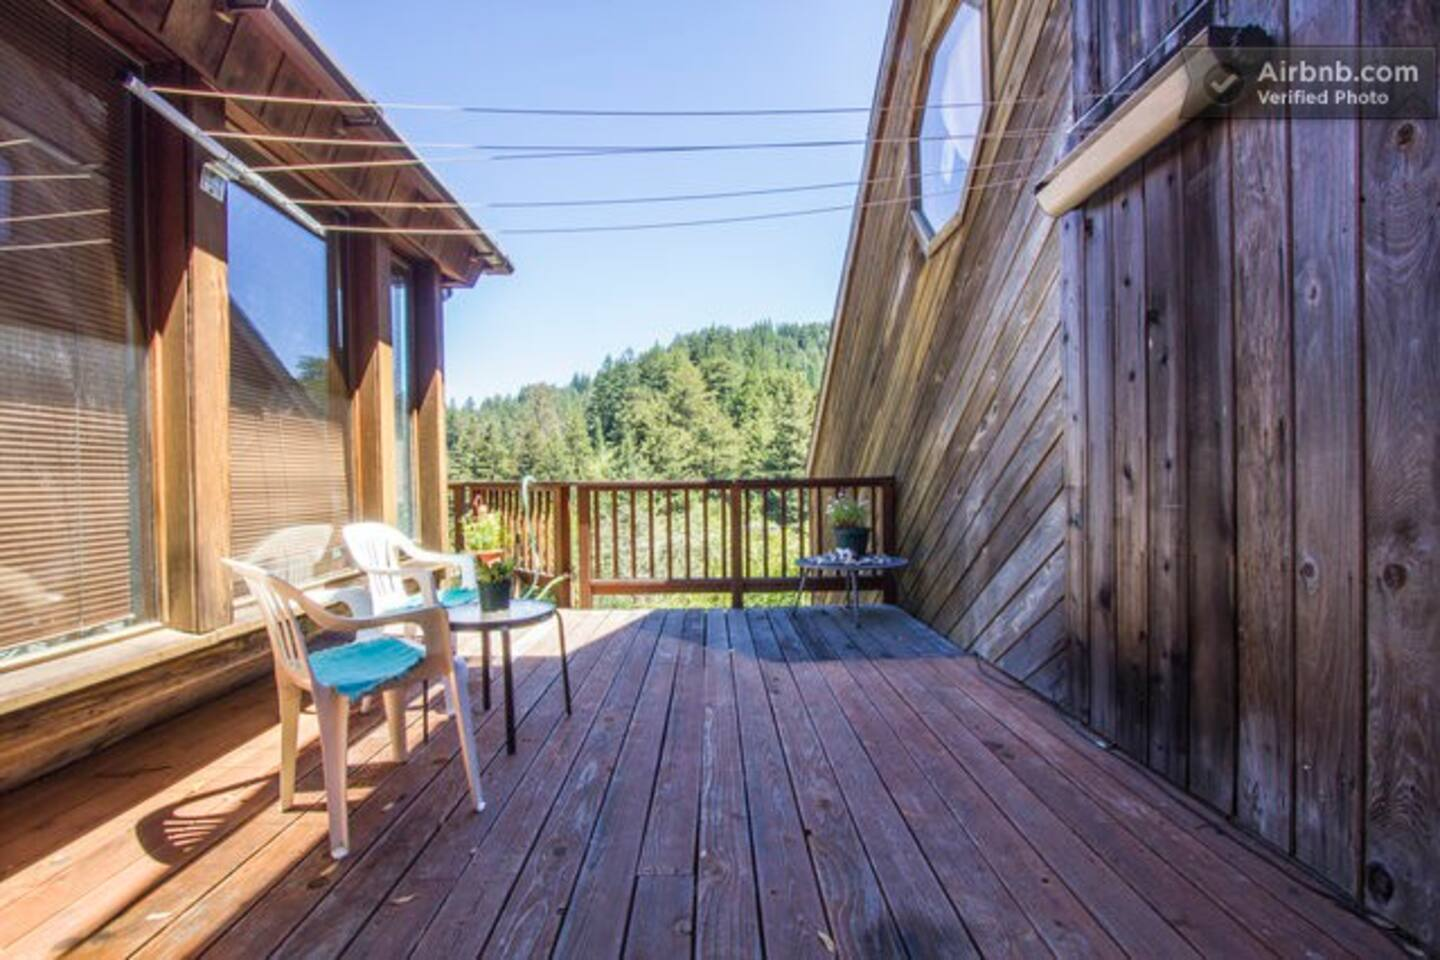 Your private deck overlooking 50 shades of green, organic gardens, redwoods and mountains.